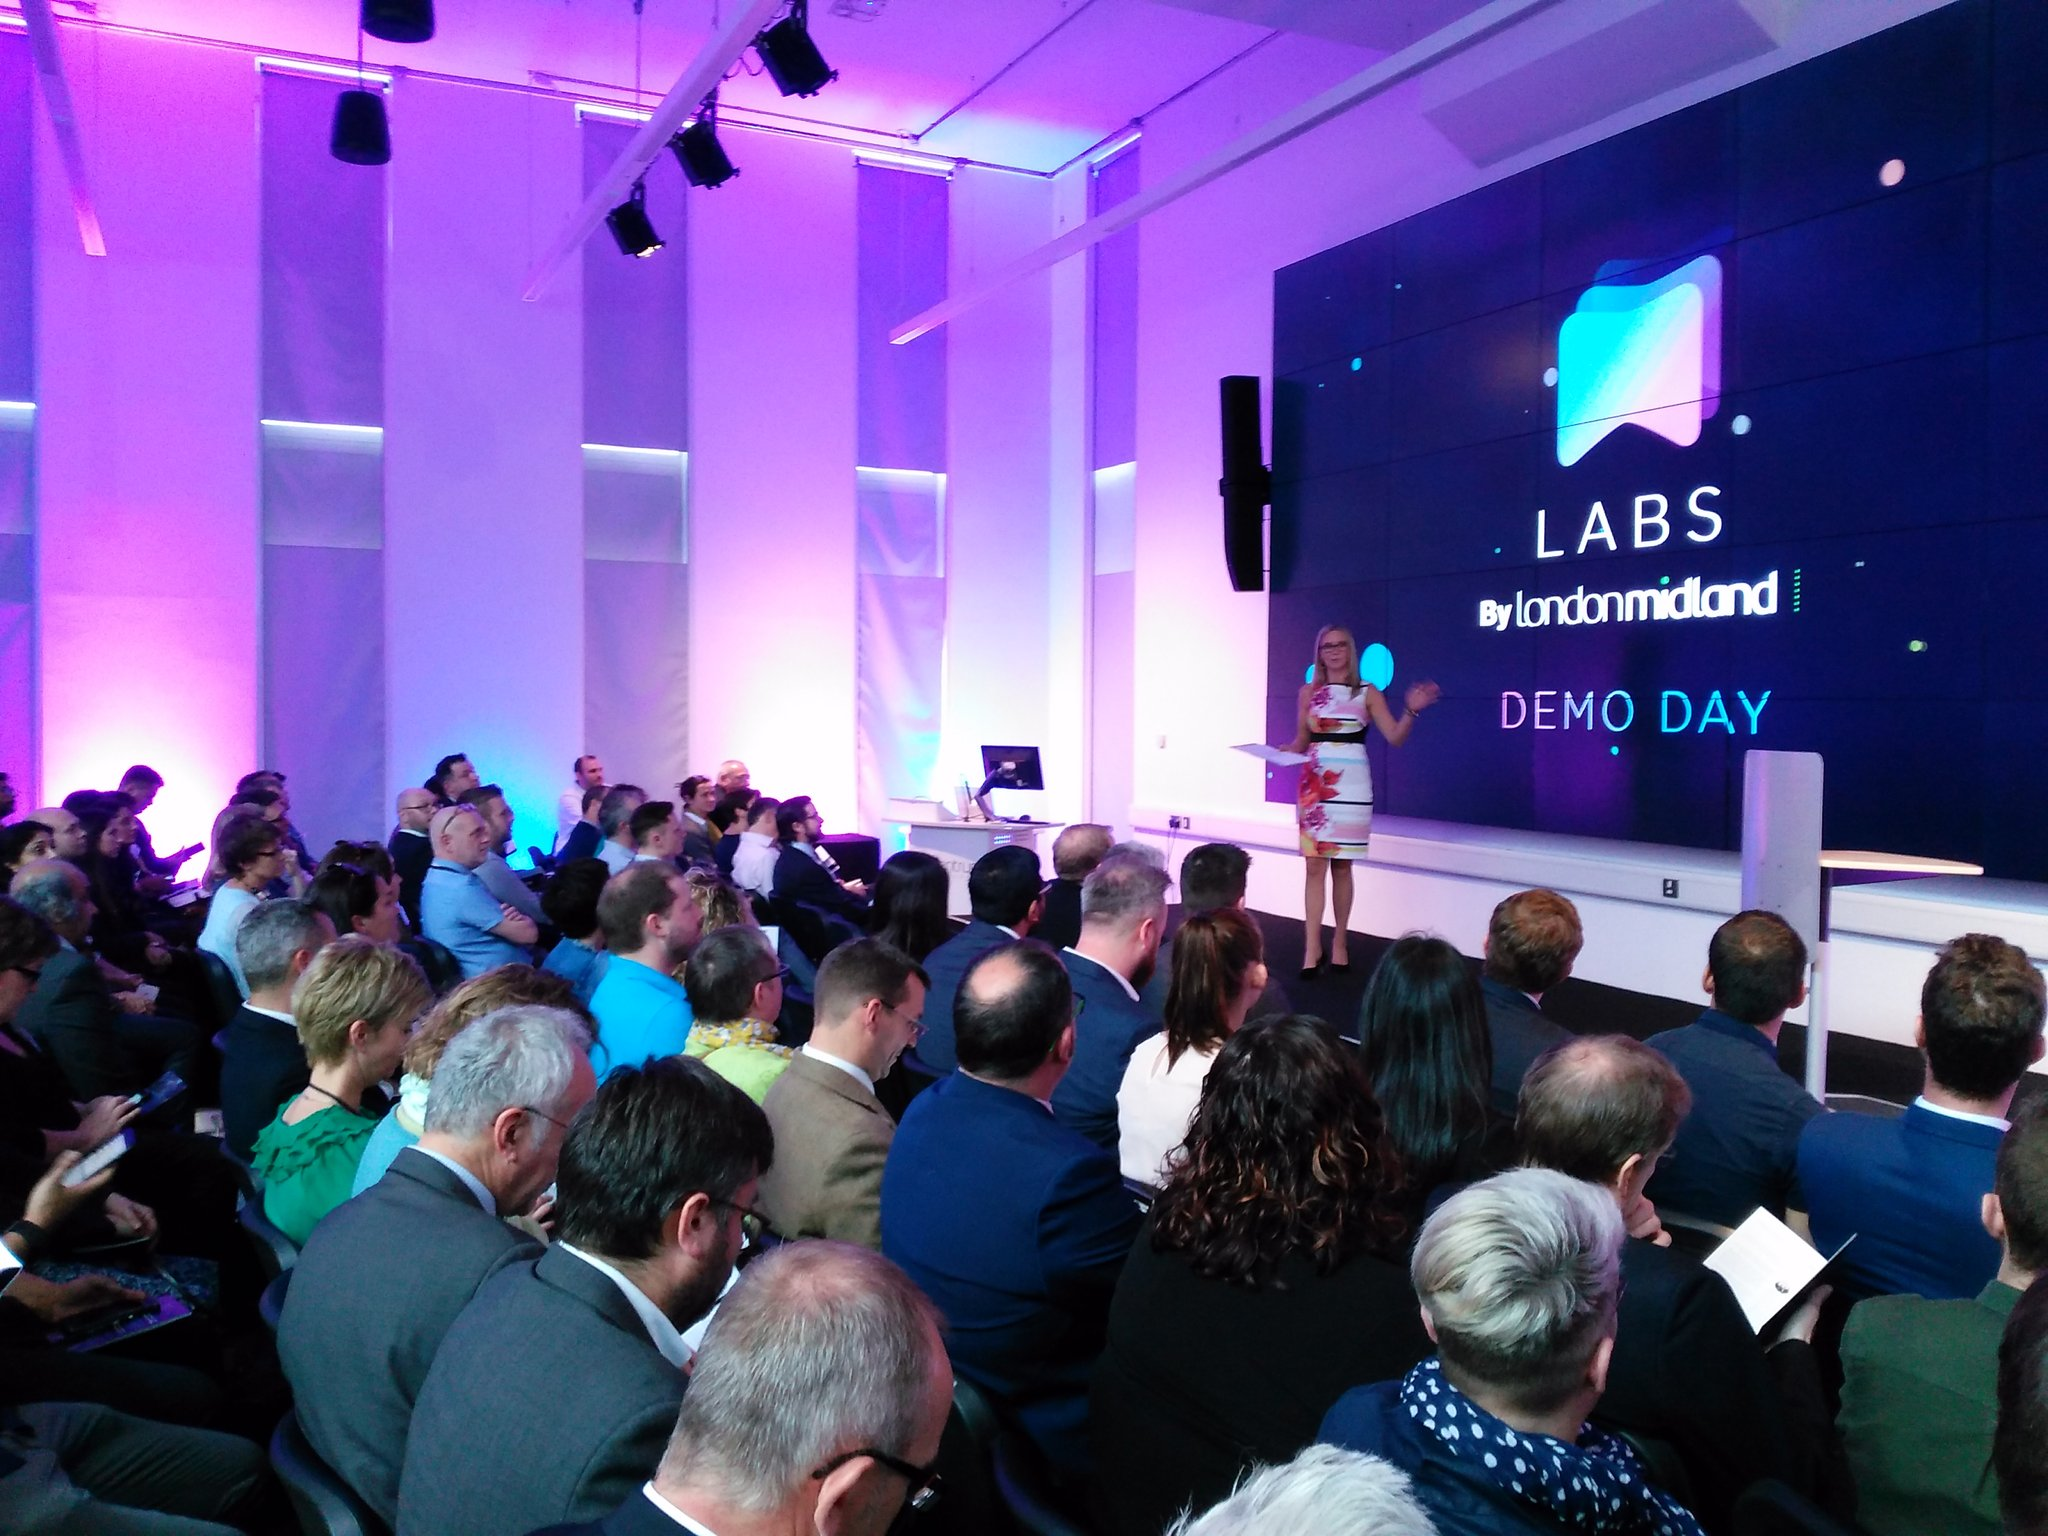 Getting @LM_Labs Demo Day underway is @katerussell #lmlabsdemo Looking for #communityrail ideas @creativesab @ACoRPOffice https://t.co/SW2fSIlMHP